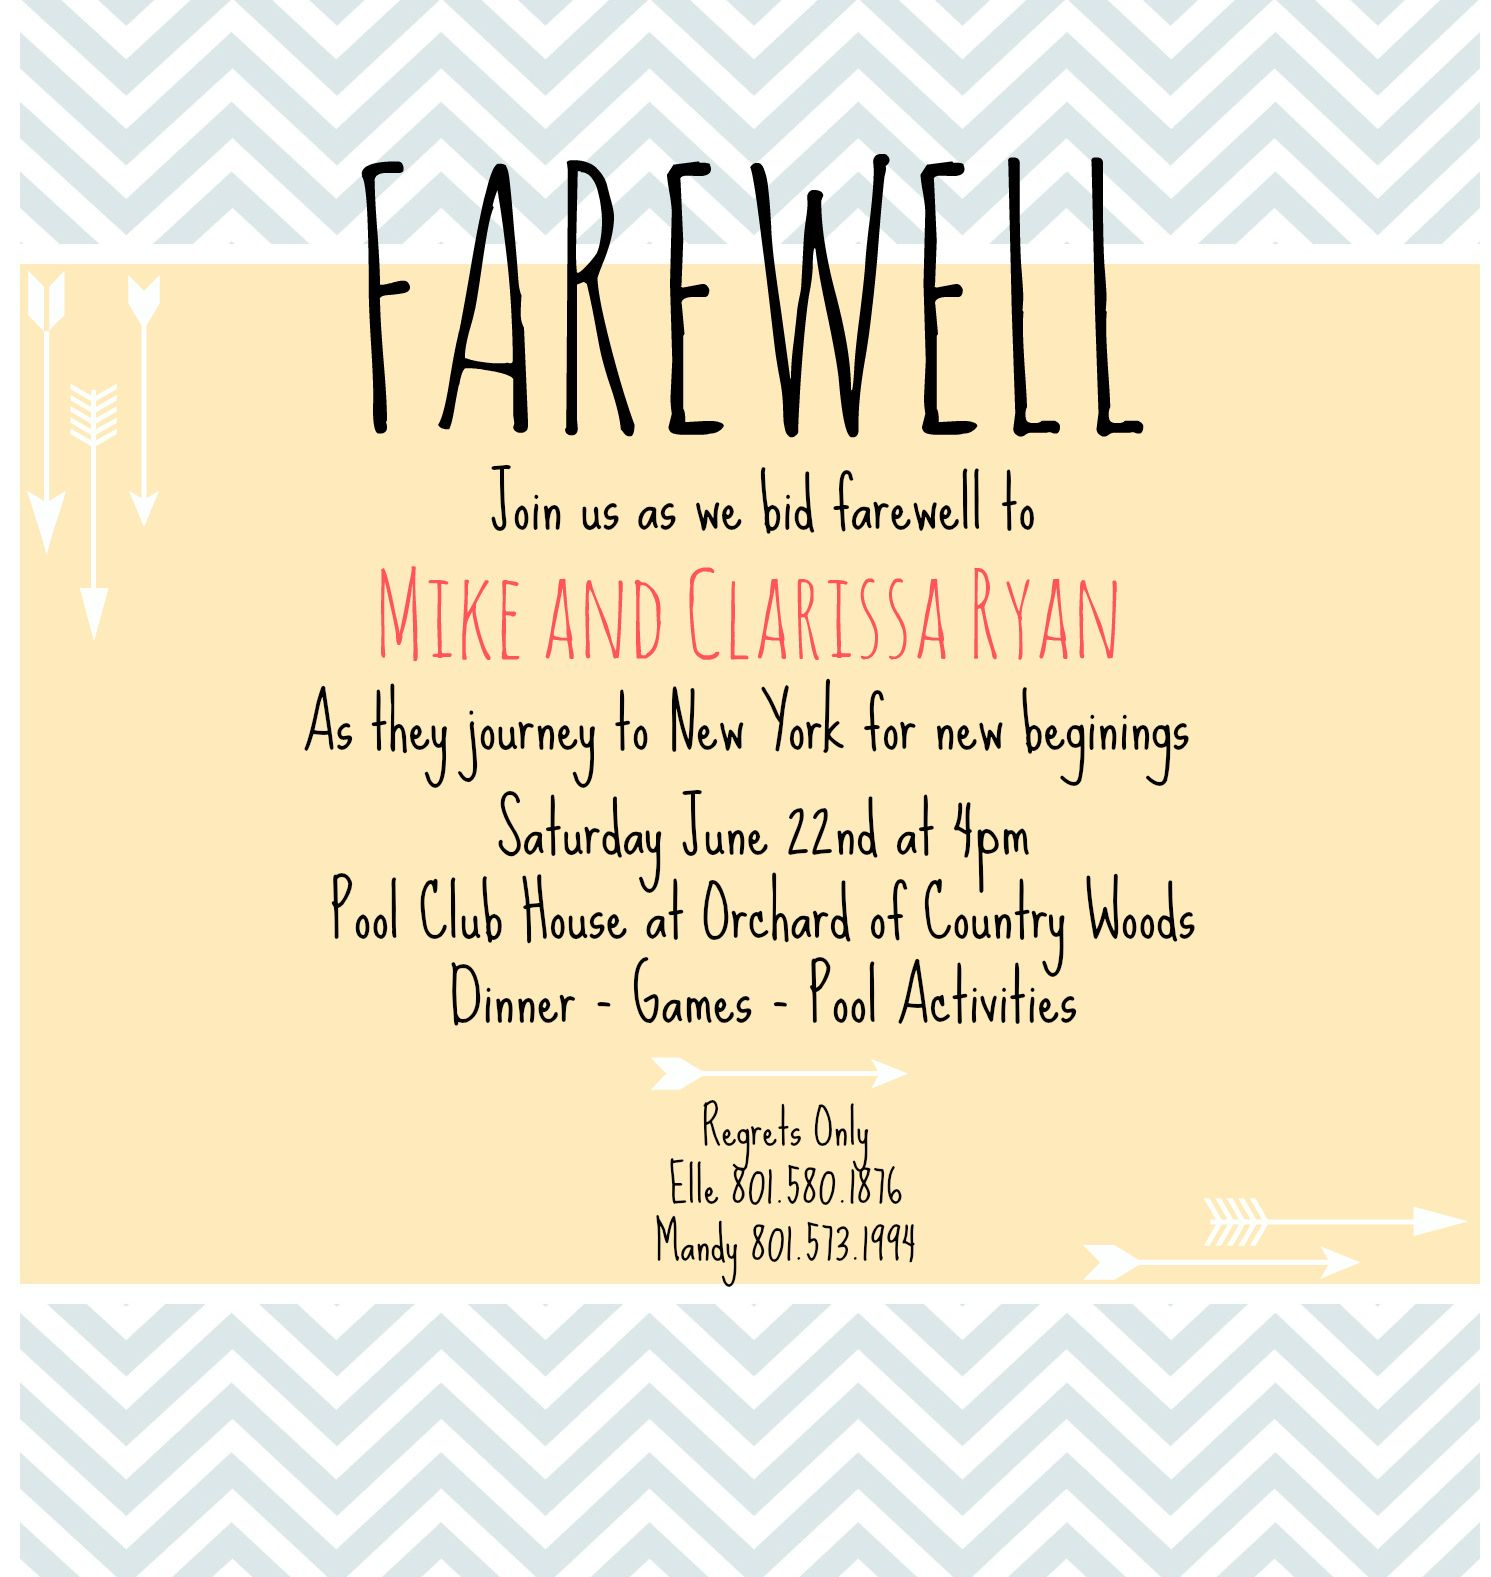 Farewell invite picmonkey creations pinterest farewell farewell invite stopboris Choice Image